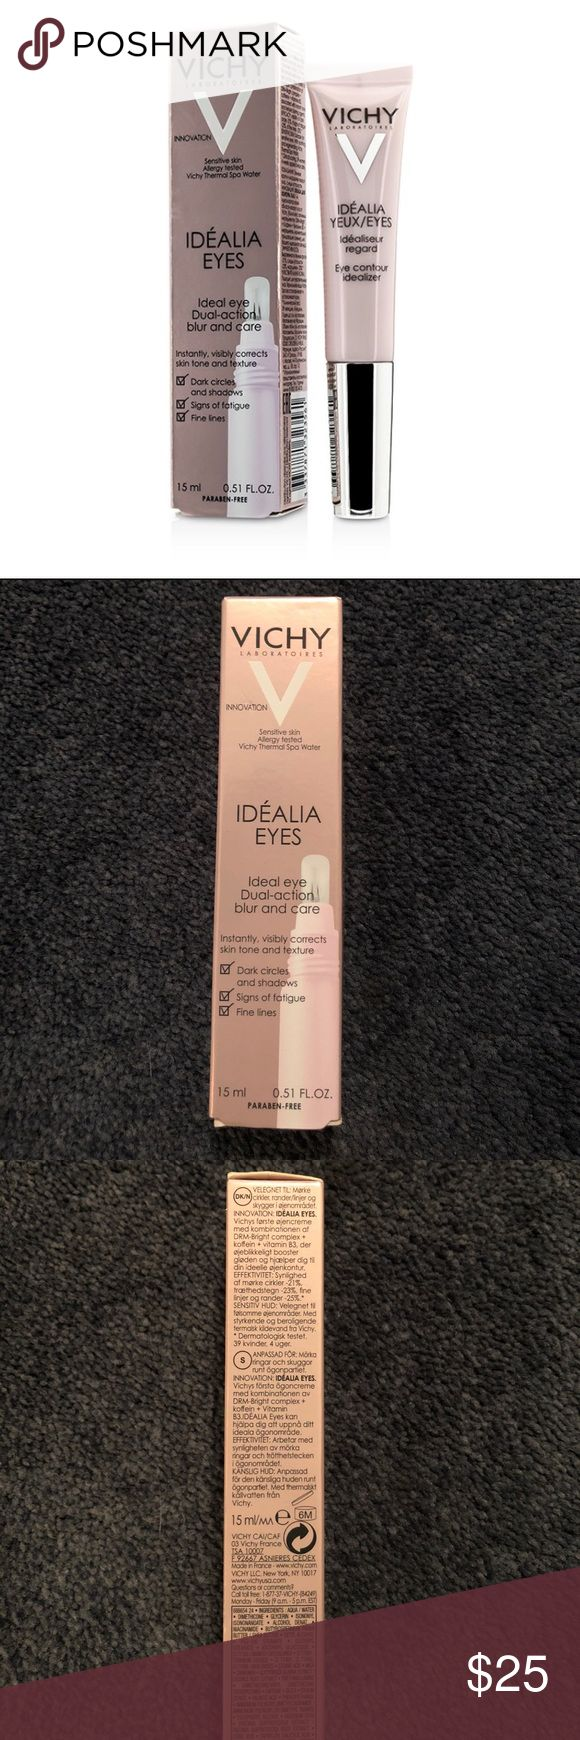 Vichy Idealia Eyes Dual action Blur & Care Brand new - Vichy Idealia Eyes Dual action Blur & Care. .51 oz. Leave tired eyes behind. Acts as an anti-wrinkle eye treatment and instant illuminator. Reduces the appearance of dark circles. Smooths fine lines. Illuminates shadows. Creamy, blendable texture absorbs quickly for an instantly moisturized, fresh-looking eye area. Innovative ultra-soft silicone applicator allows for gentle, precise application. Fragrance-free. Allergy-tested. Suitable…